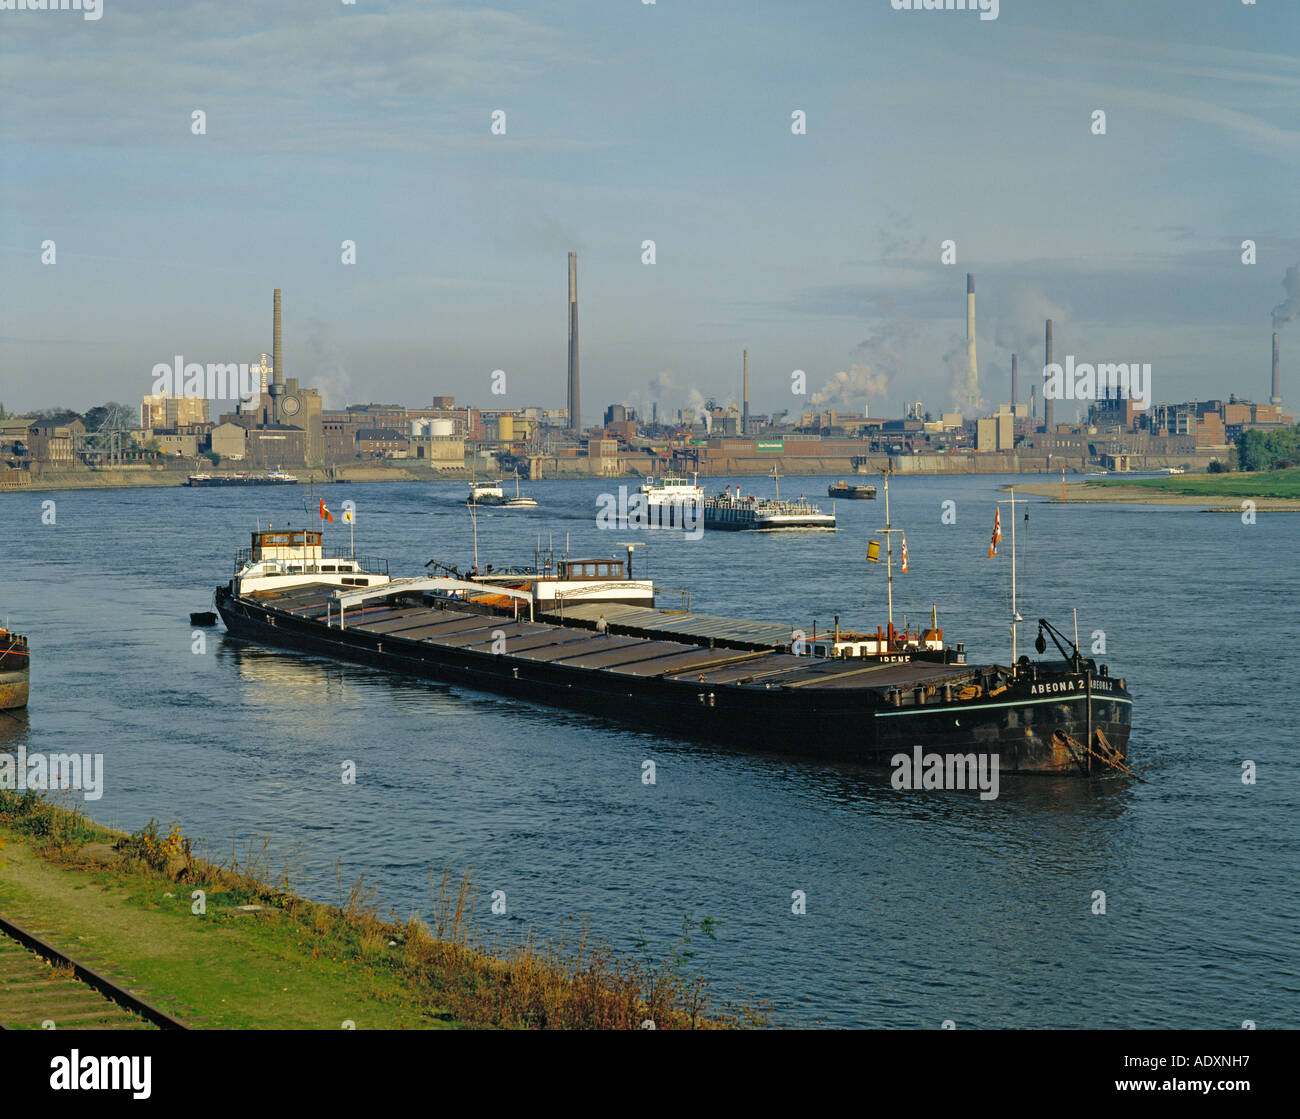 Germany; the Rhine at Krefeld-Uerdingen with Bayer Chemical Works in background. - Stock Image